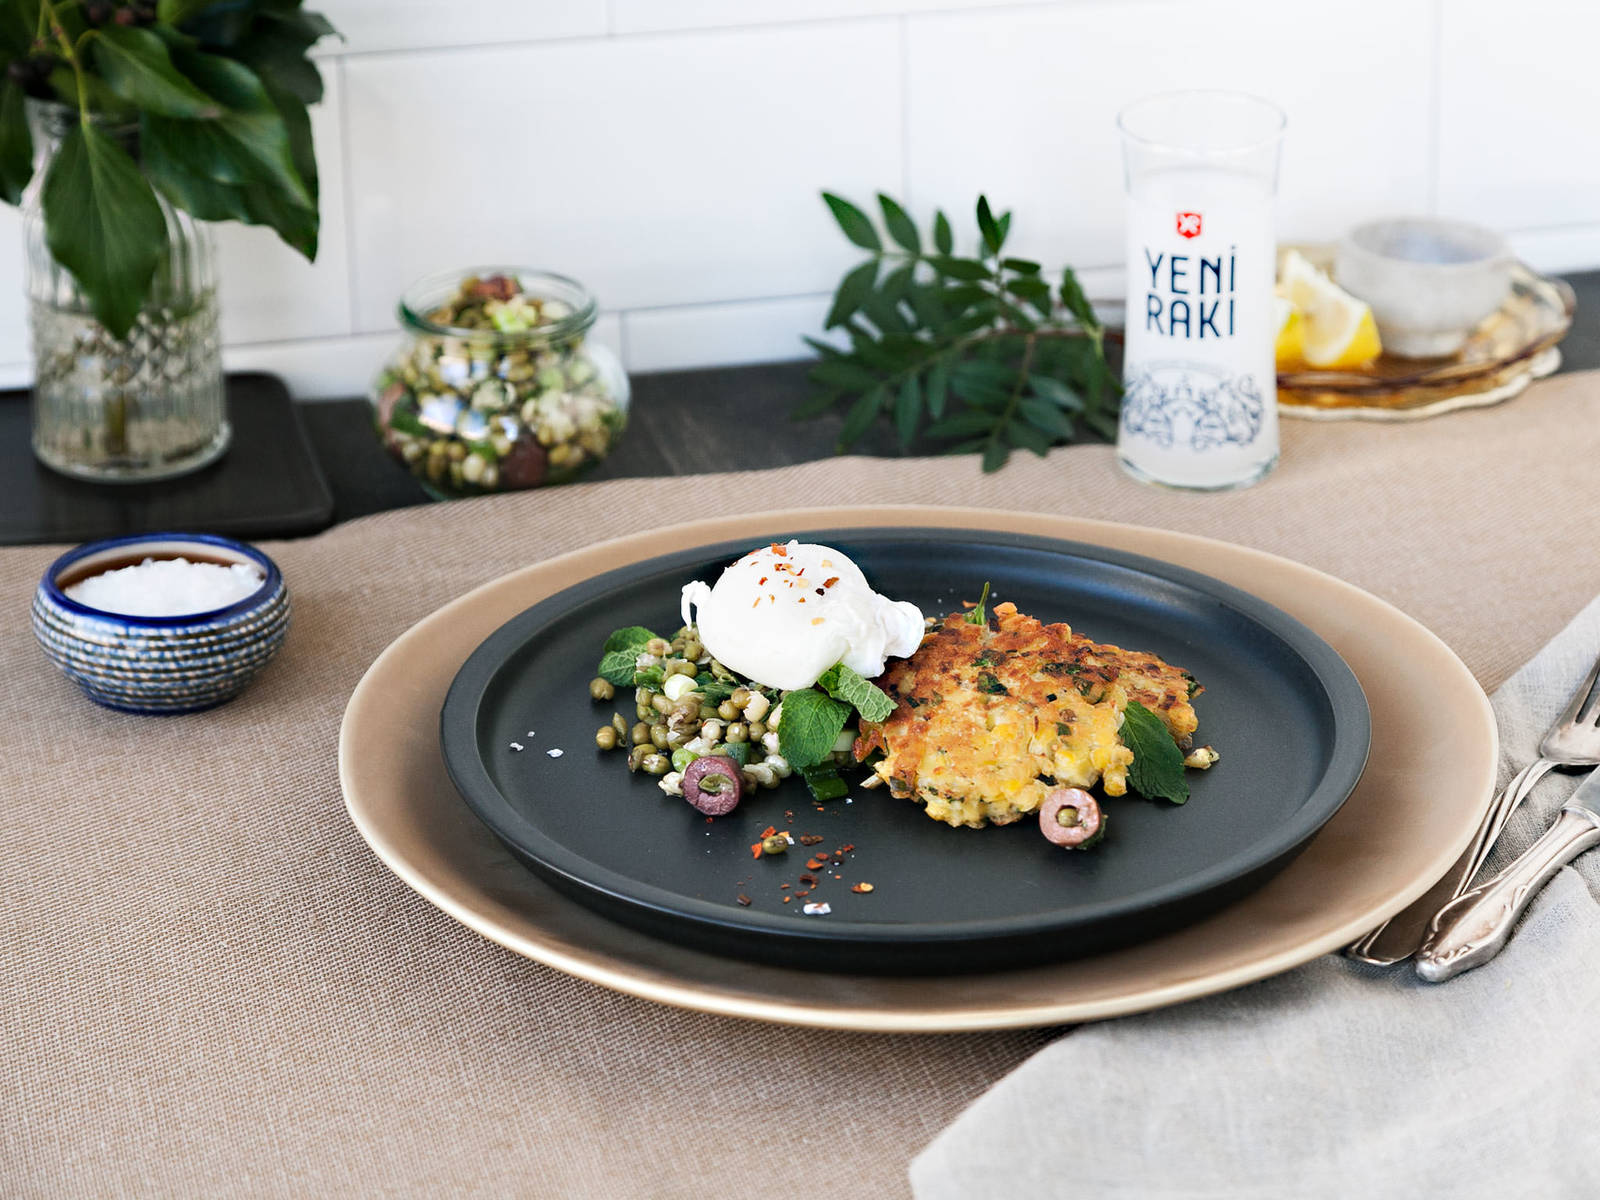 Lentil cakes with poached egg and mung bean salad